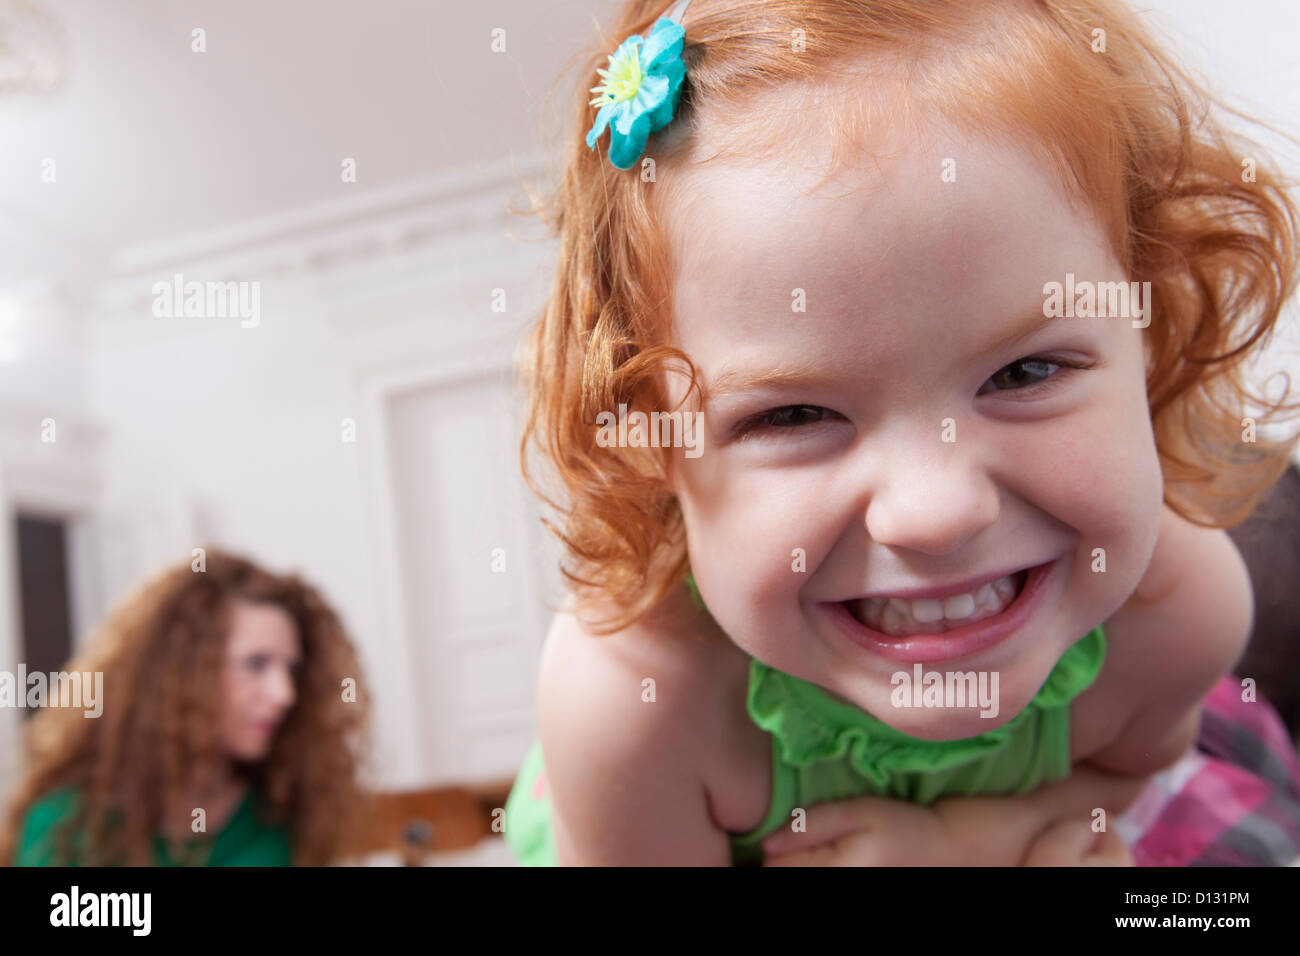 Allemagne, Berlin, Girl having fun at home, woman in background Photo Stock